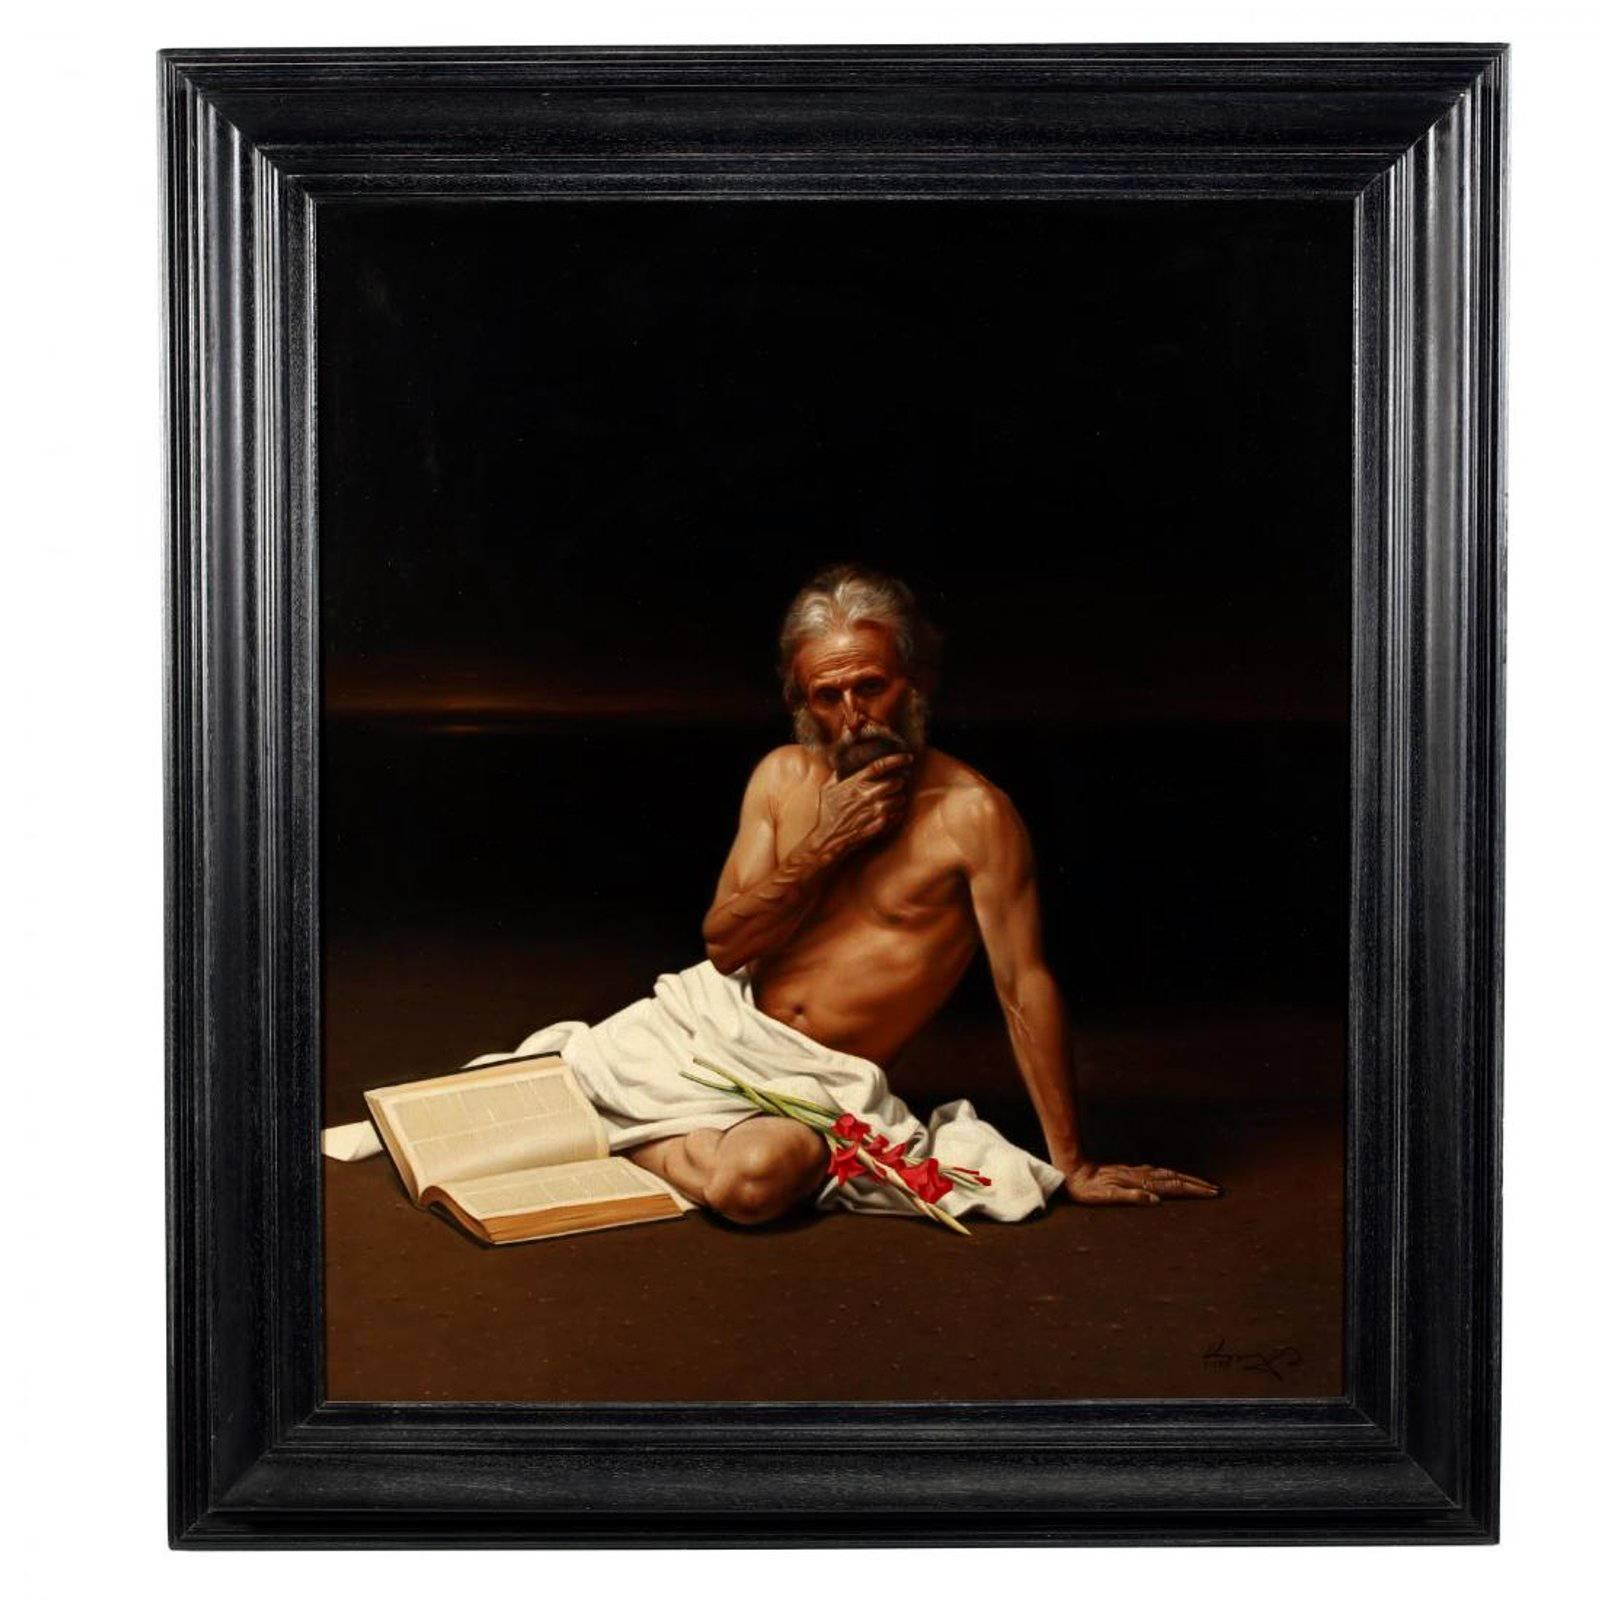 Large Allegory Oil Painting in Frame by Greek Artist Angelos Panayiotou